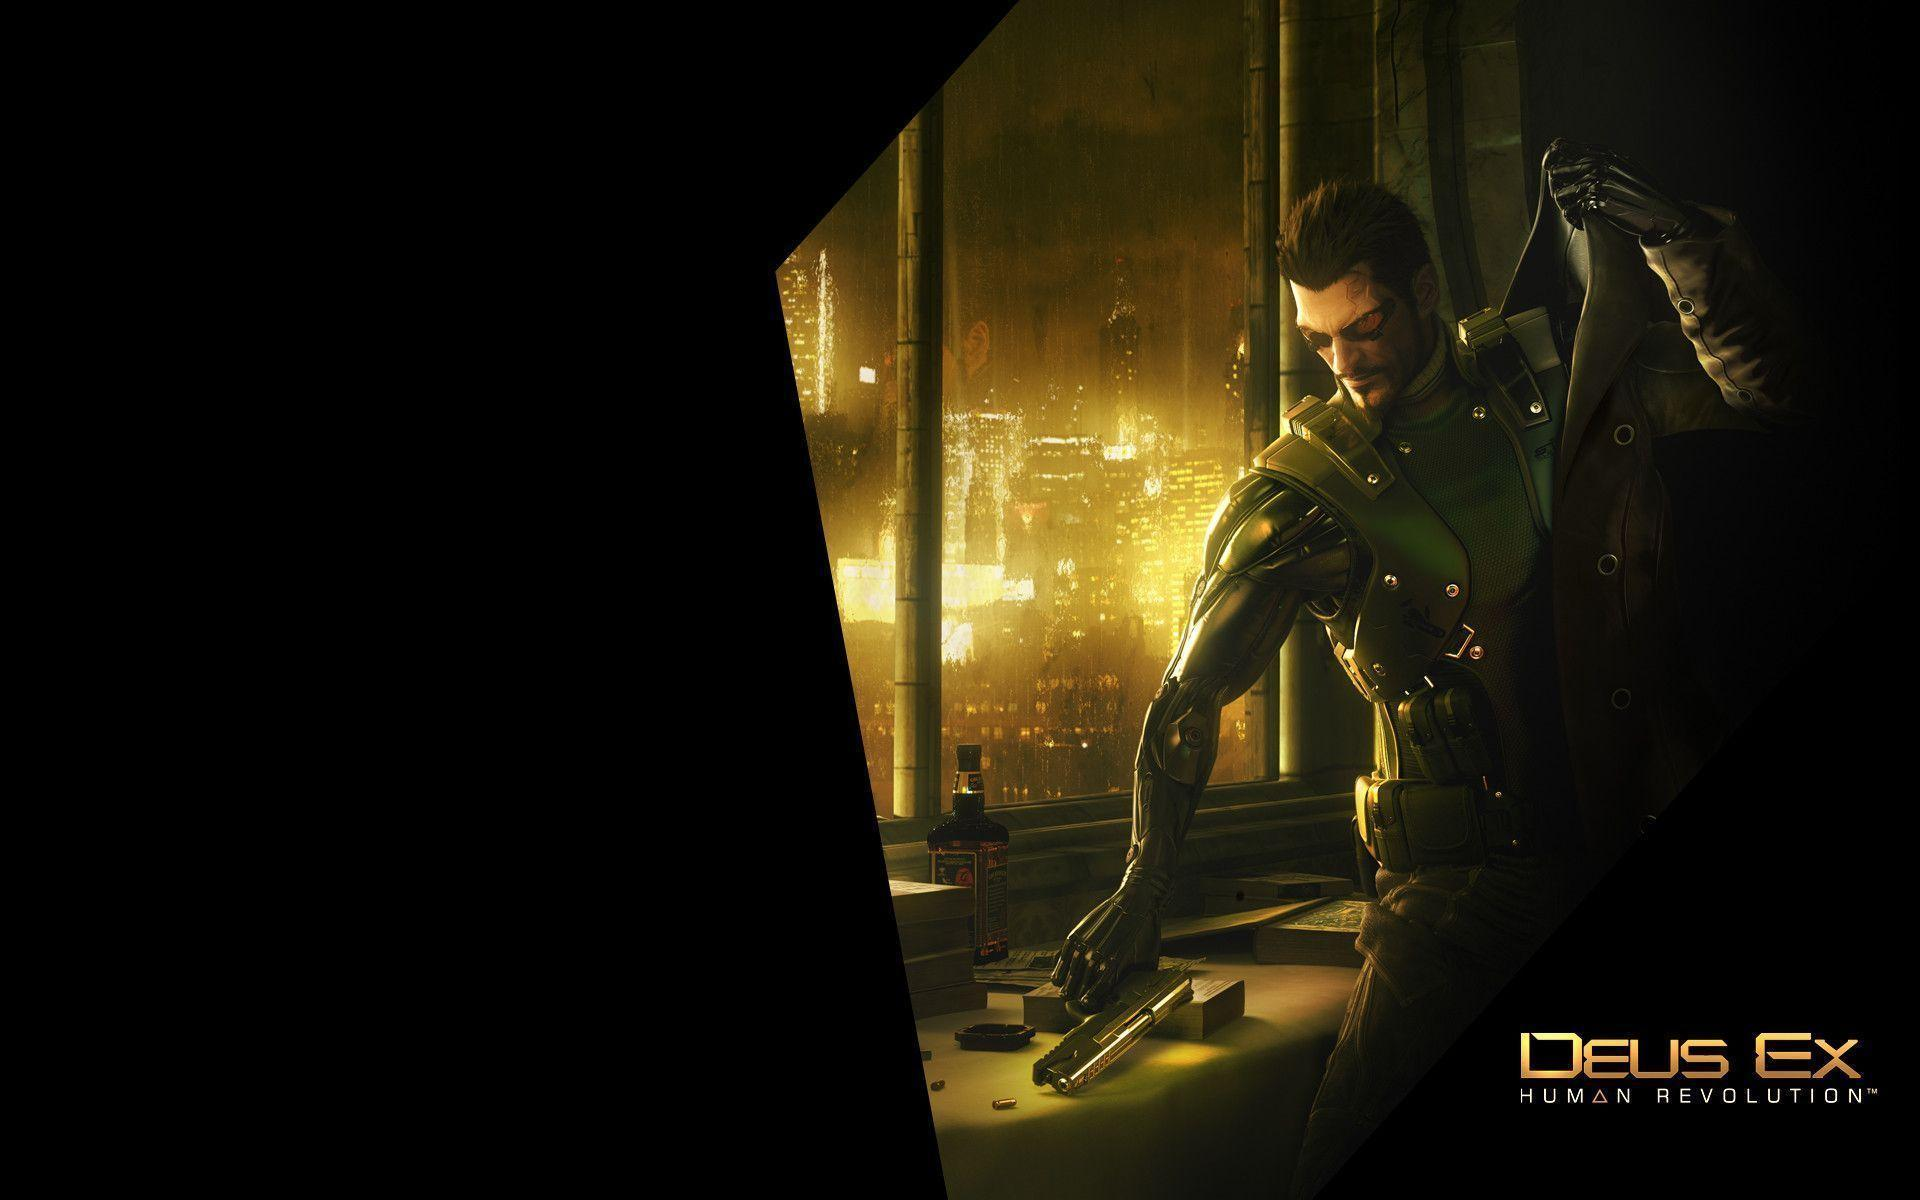 Deus Ex Human Revolution Wallpapers Ready for Action